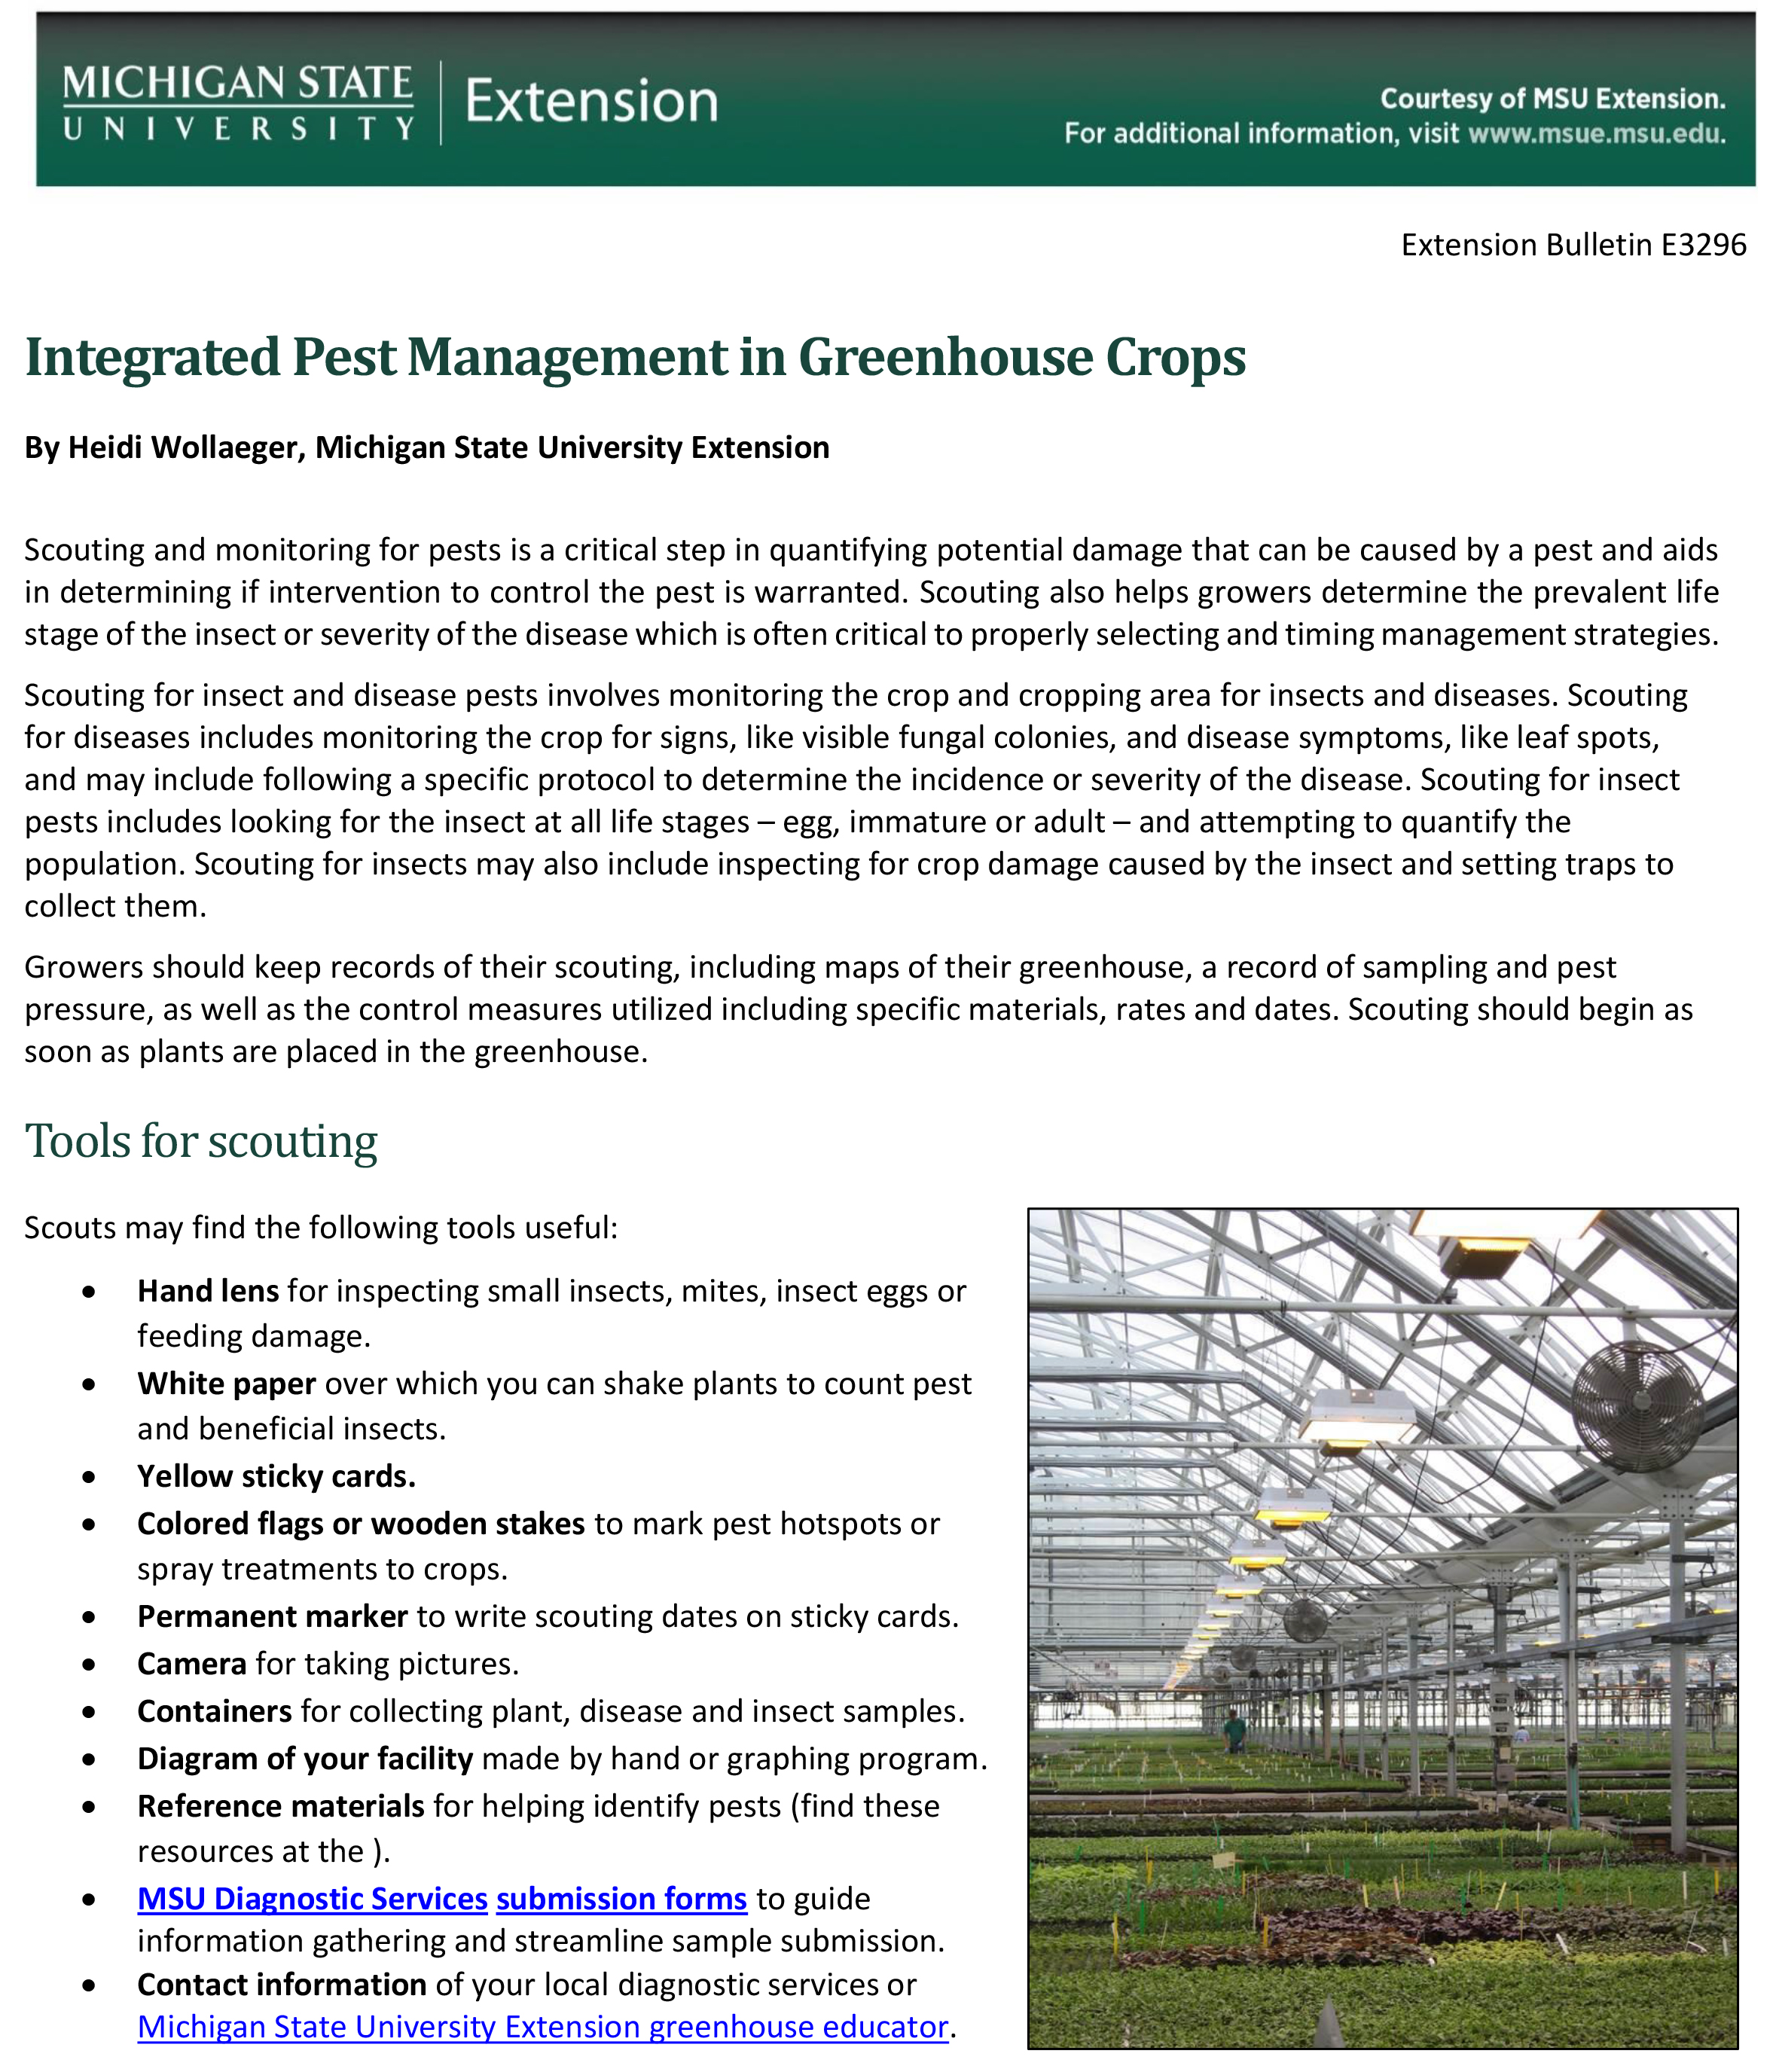 Integrated Pest Management in Greenhouse Crops (E3296)